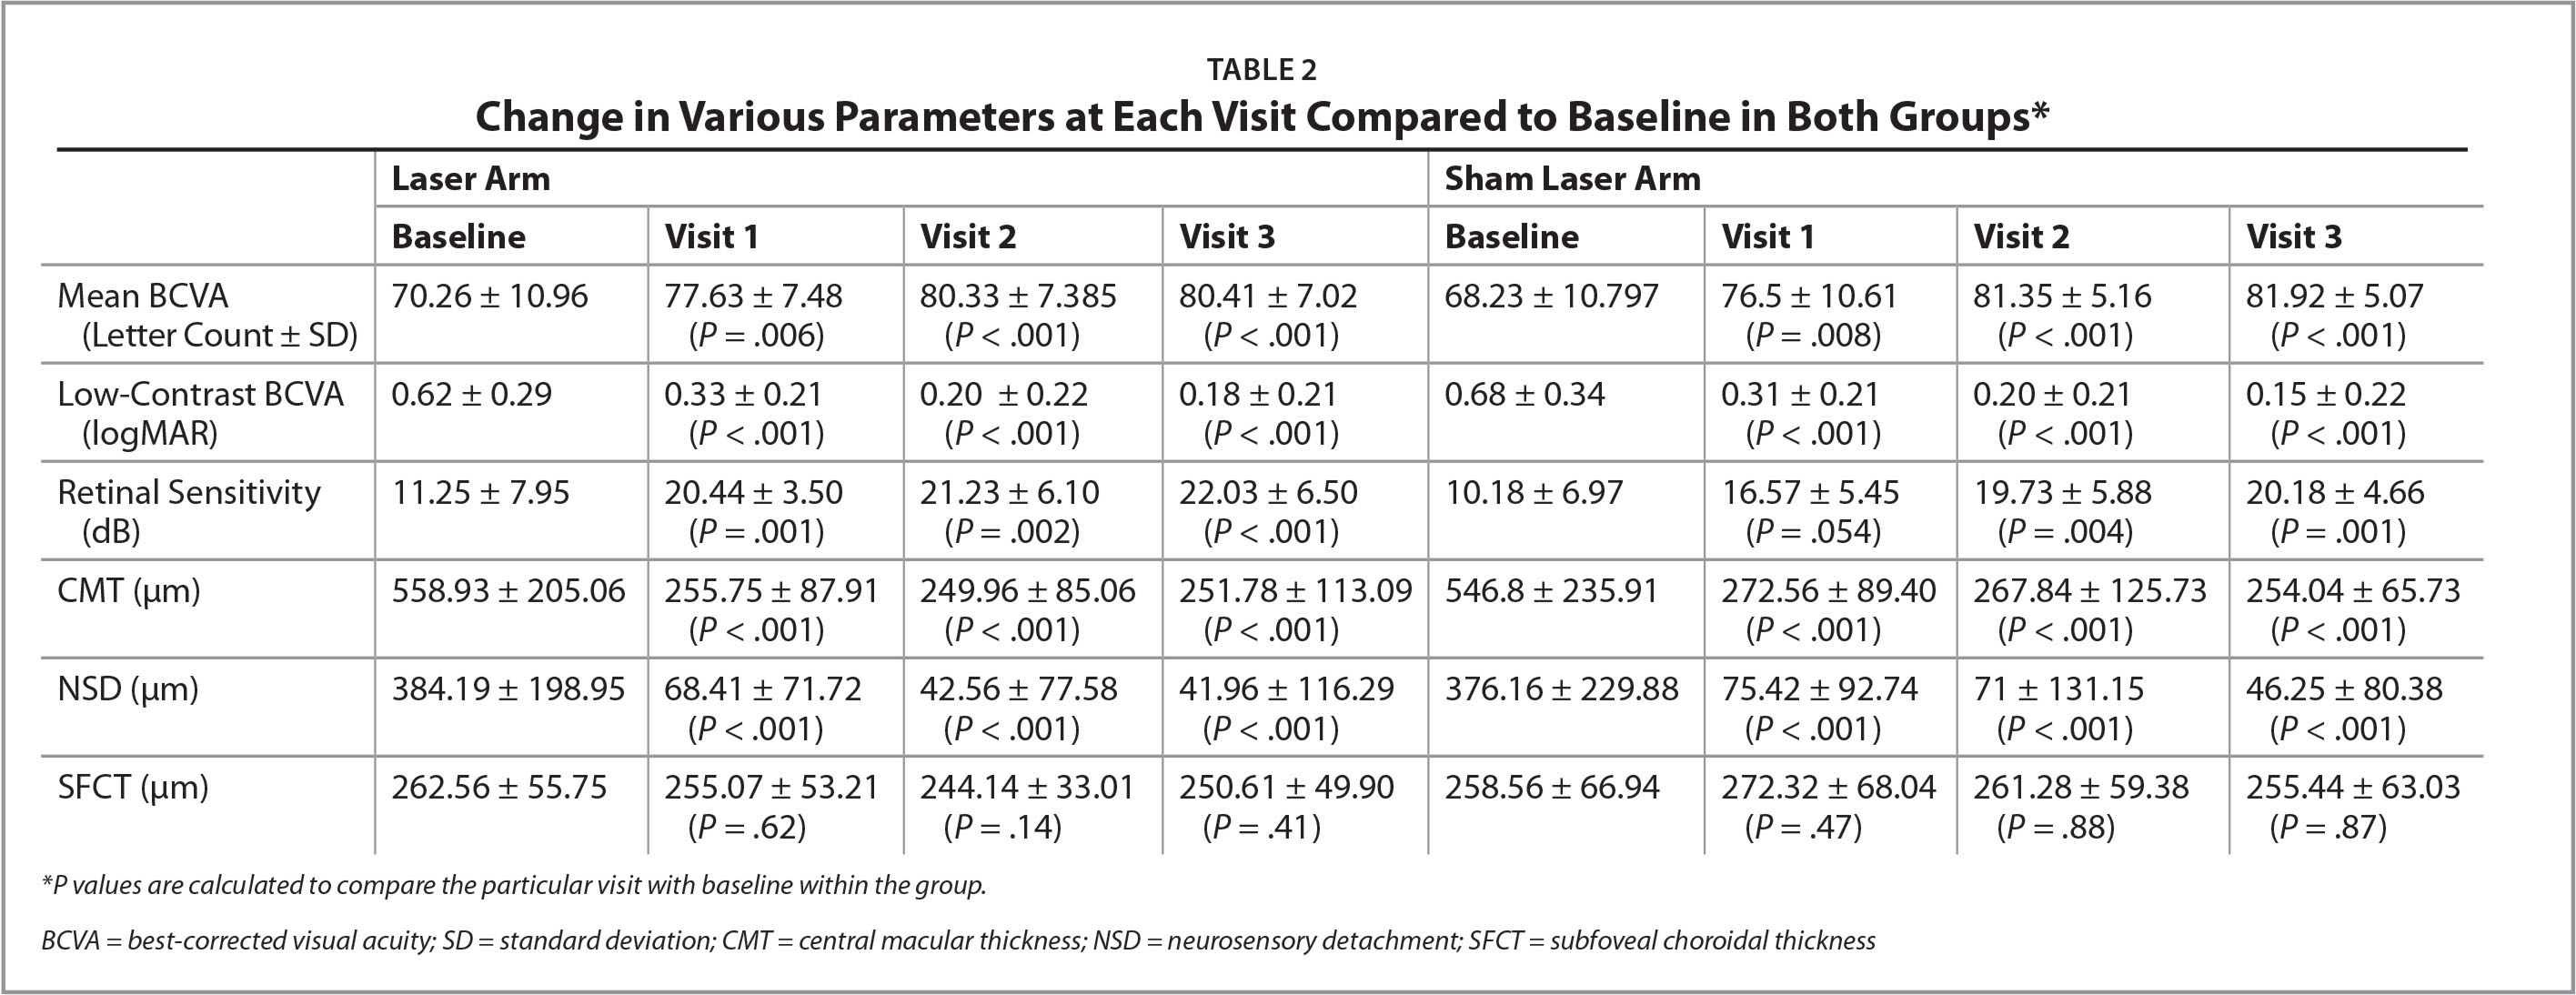 Change in Various Parameters at Each Visit Compared to Baseline in Both Groups*